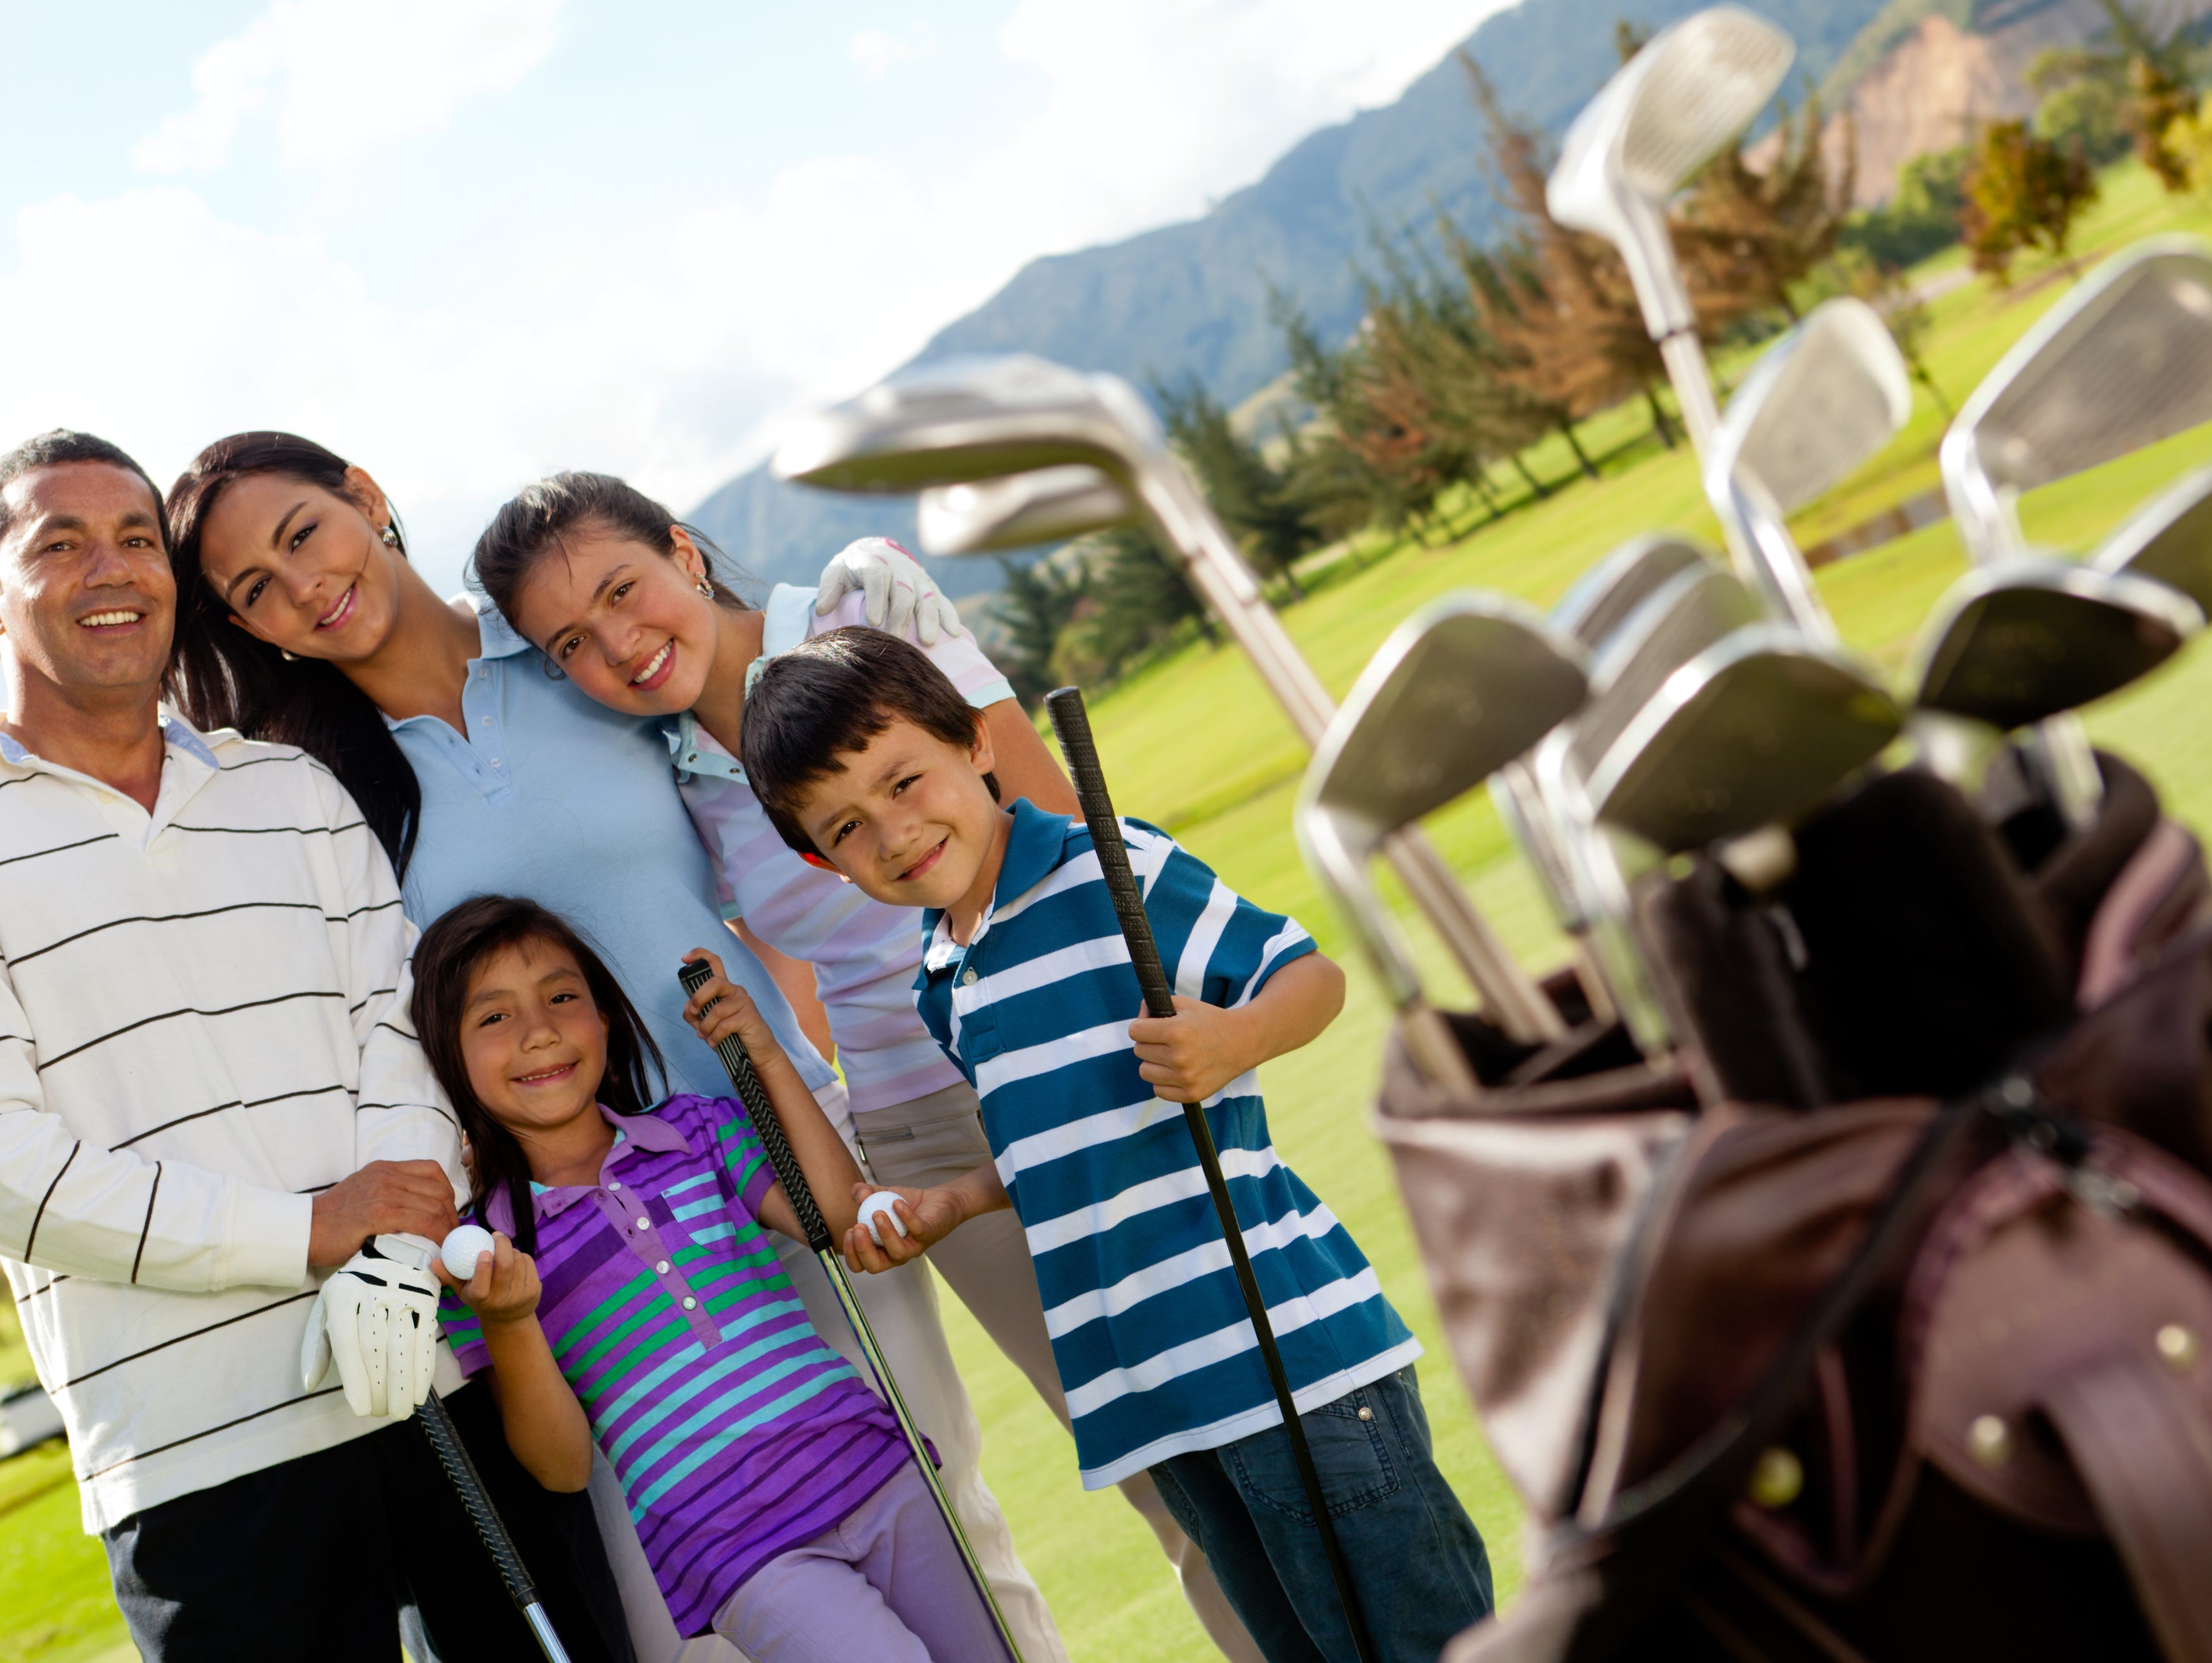 Savings up to $75 off activities ranging from pedal boat rentals to bowling to kart racing to golf and more!